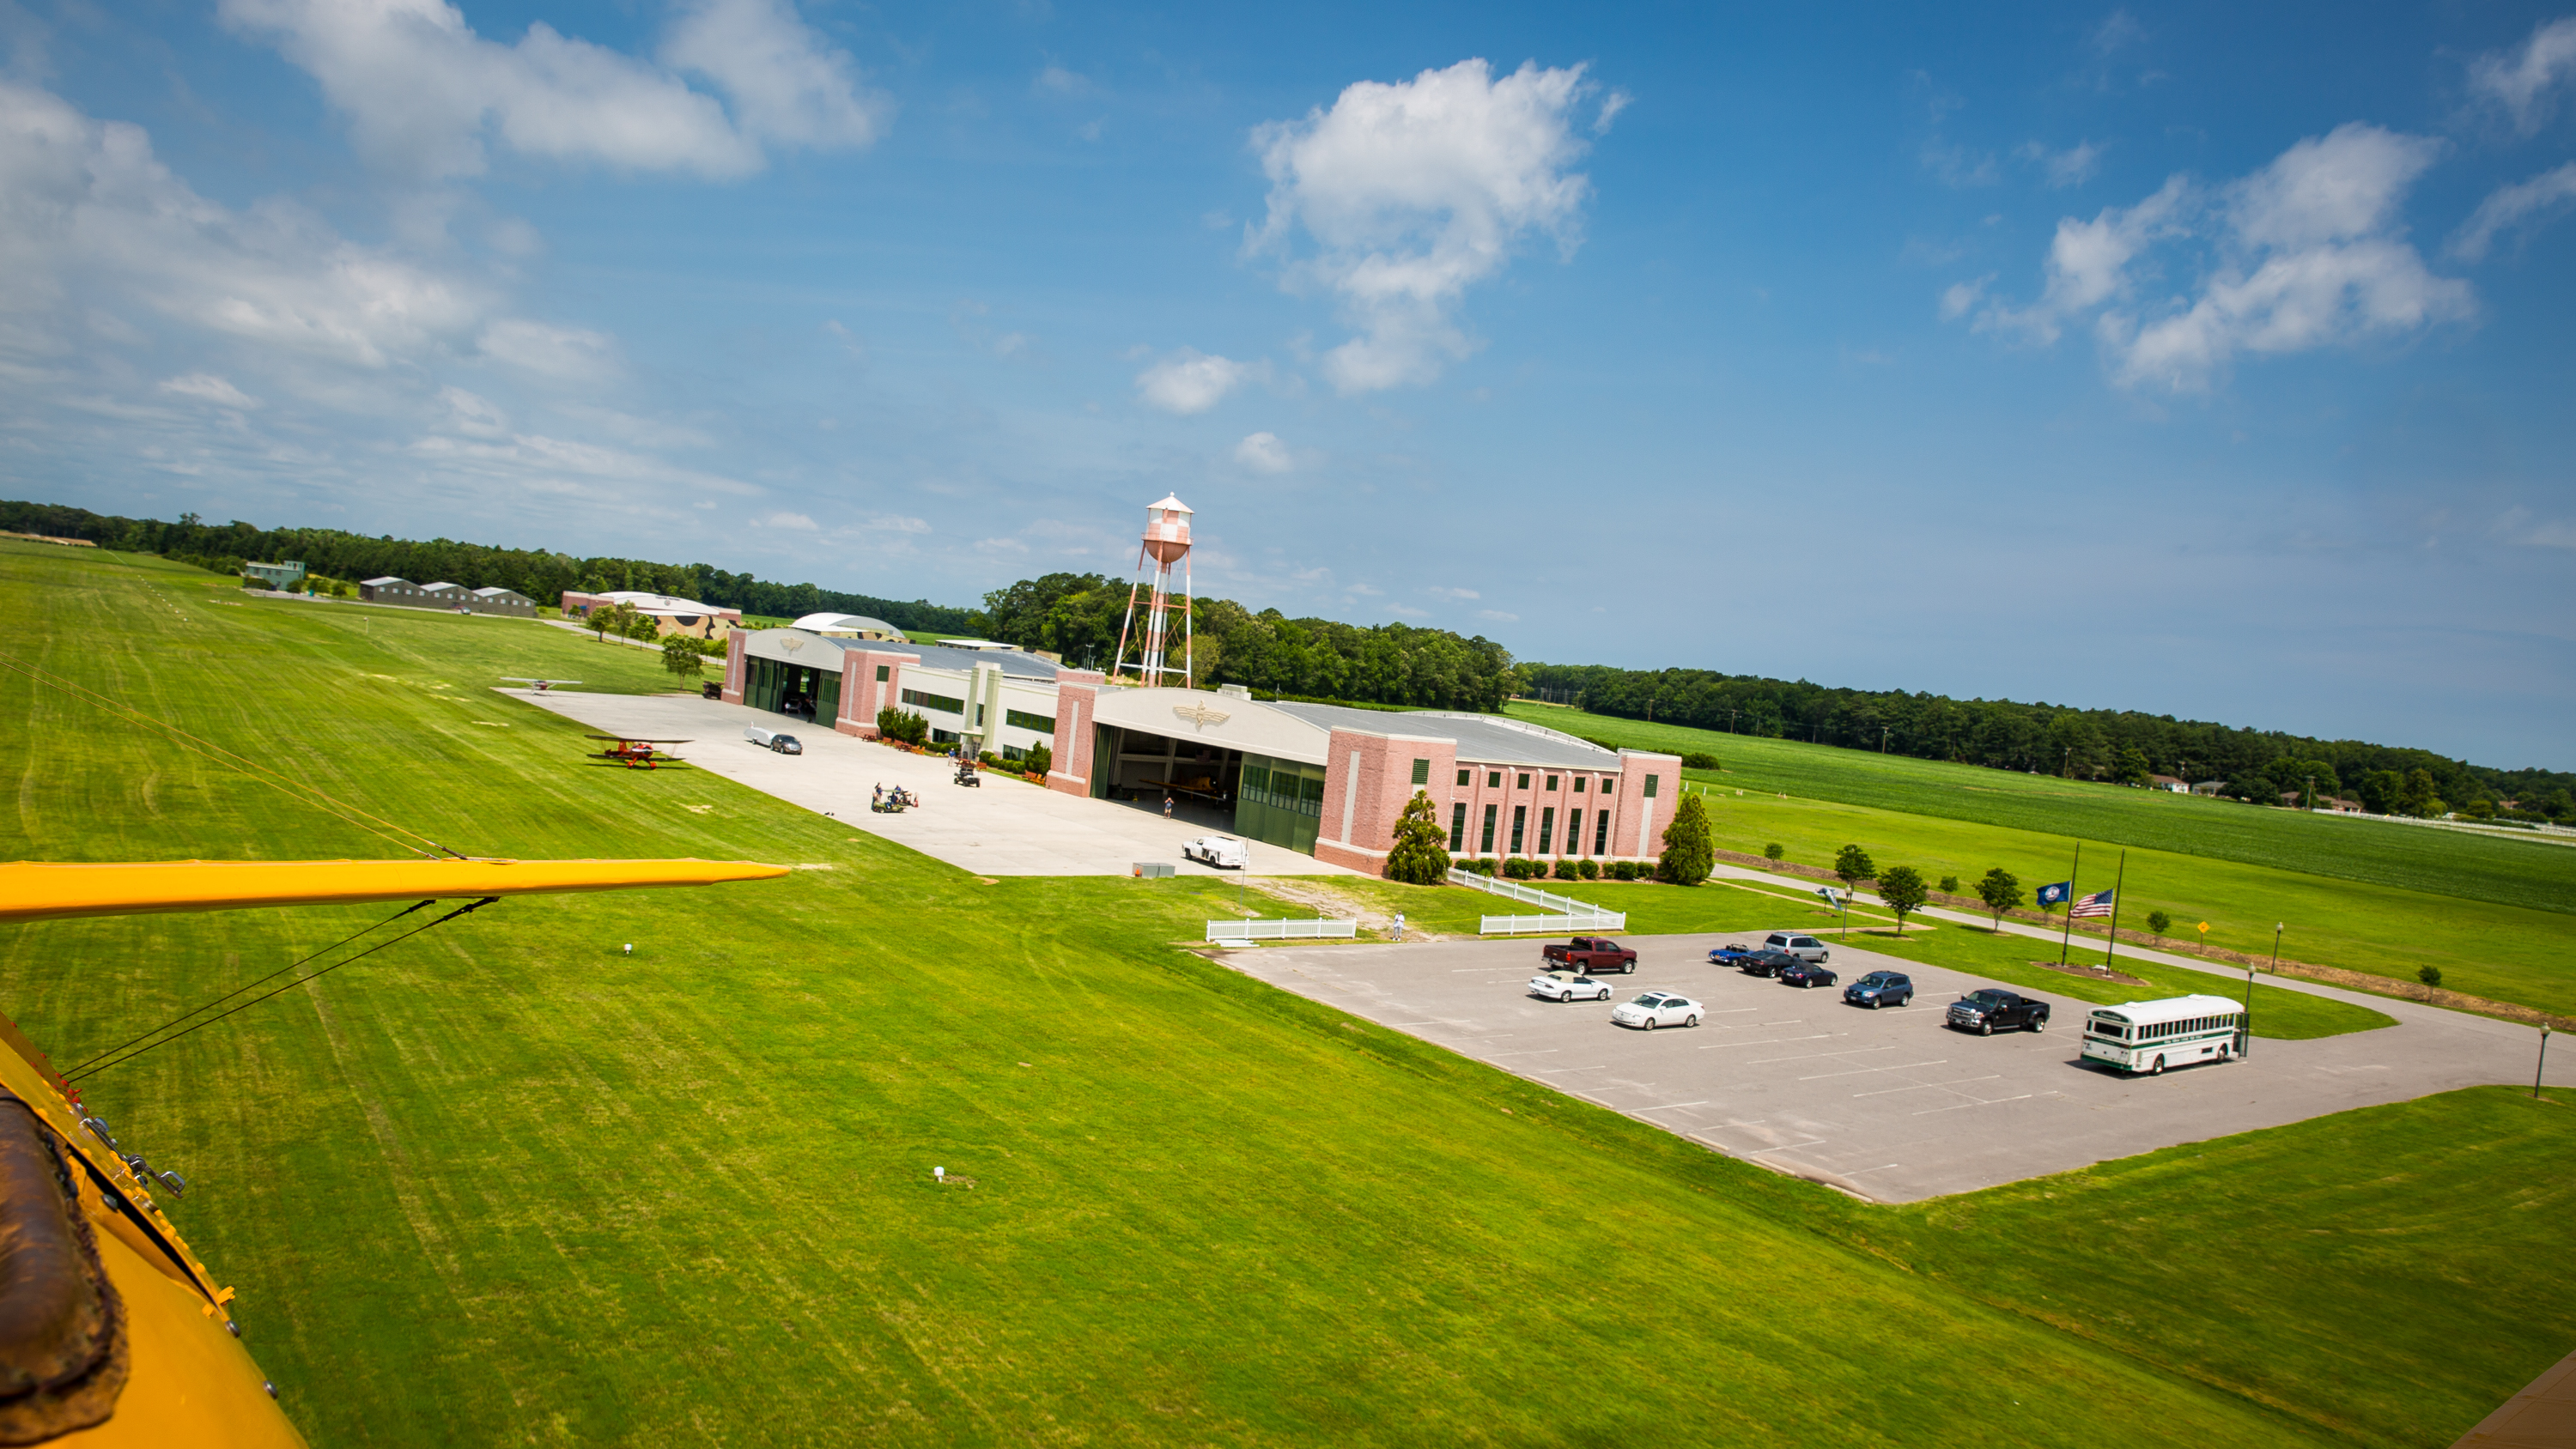 The Vintage 1930 S Art Deco Airplane Hangars And Sprawling Airfield Of Virginia Beach Military Aviation Museum Are A Must See For Locals Visitors